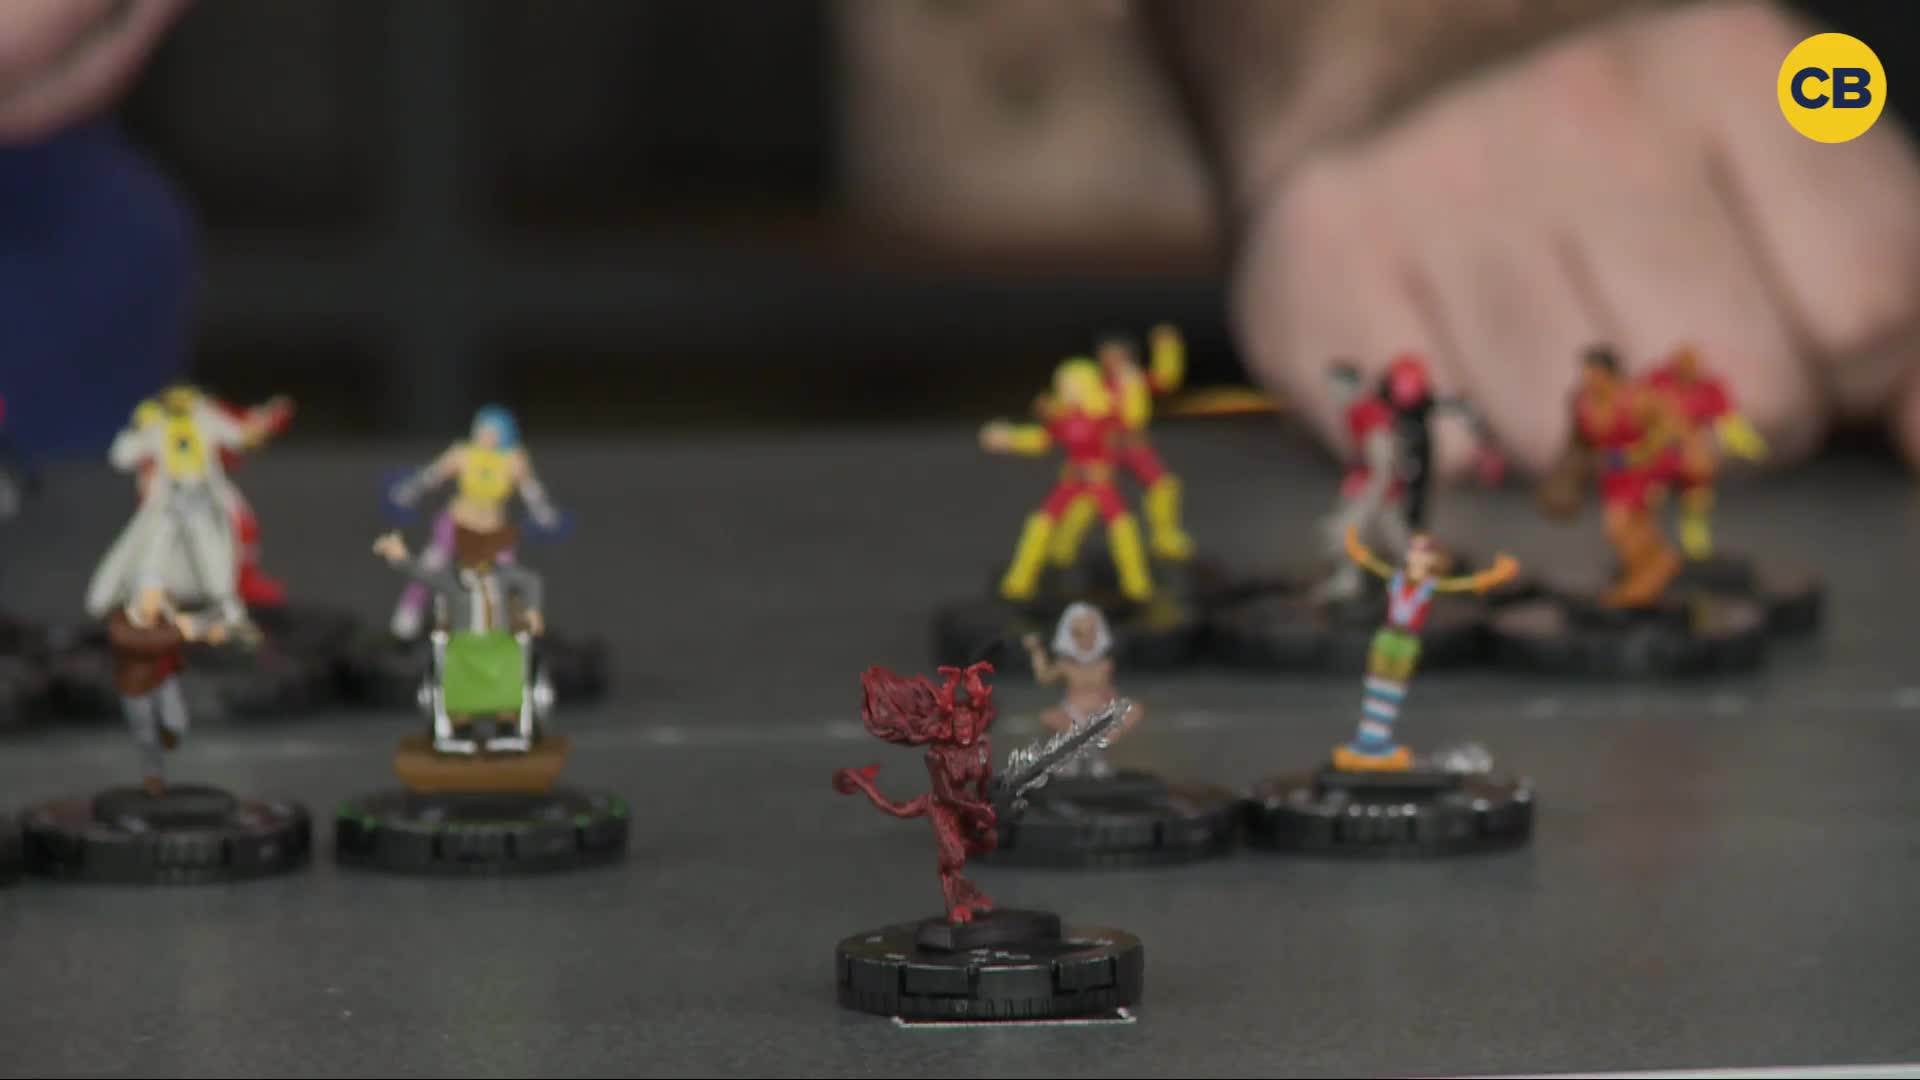 Marvel HeroClix: X-Men Xavier's School - UNBOXING screen capture